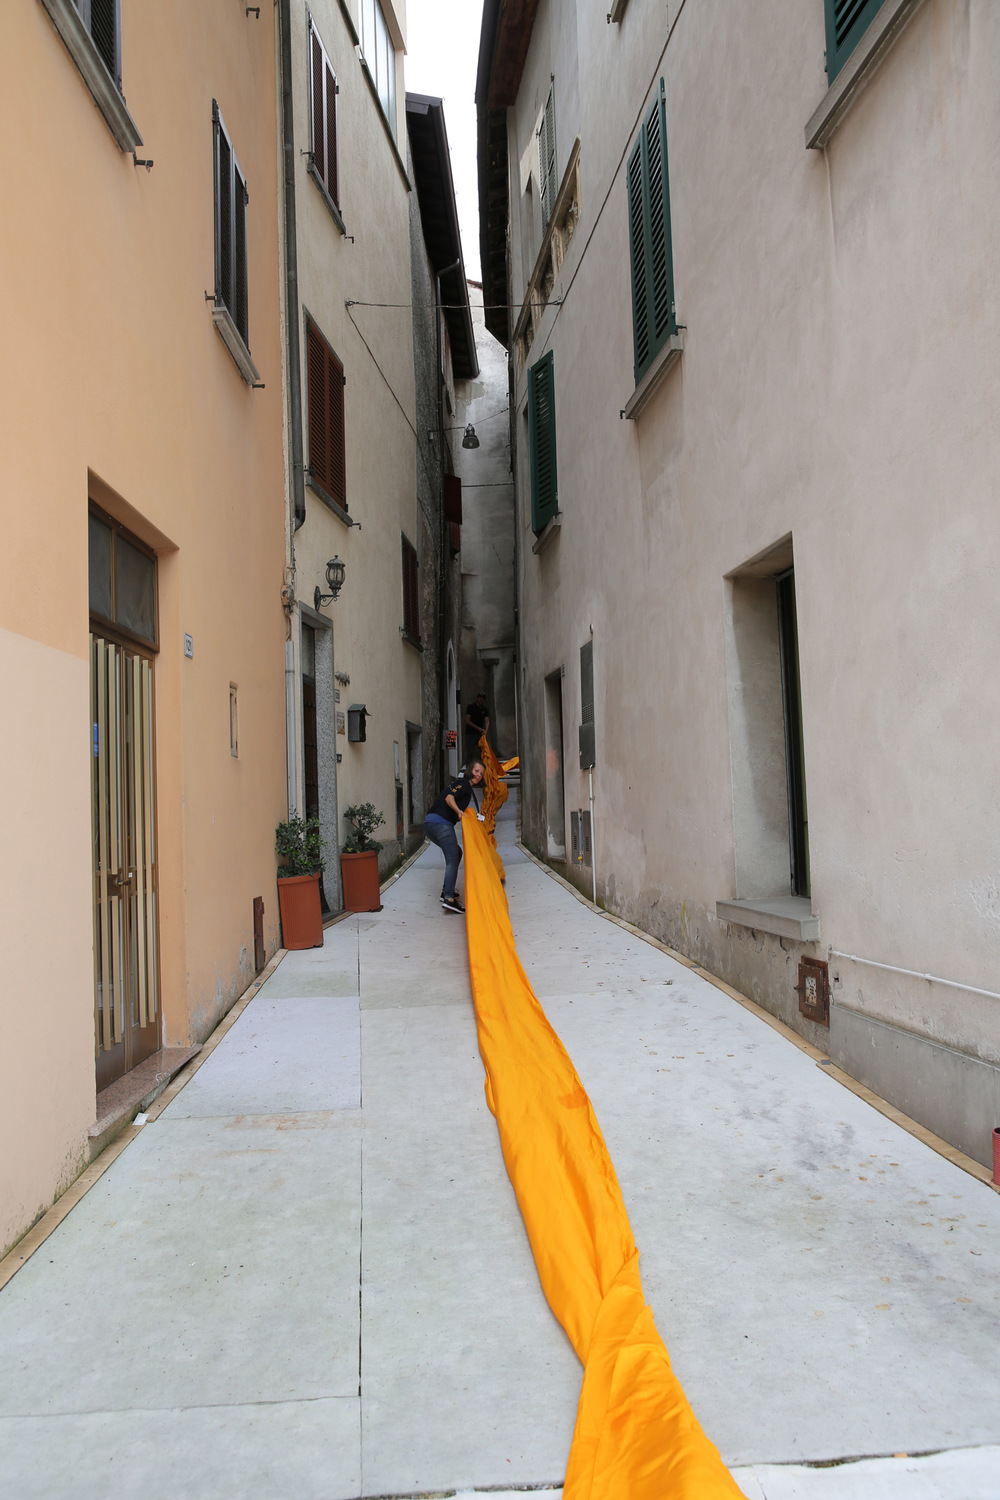 From the evening of June 15 to the evening of June 17, teams unfurl 100,000 square meters of shimmering dahlia-yellow fabric on the piers and pedestrian streets in Sulzano and Peschiera Maraglio